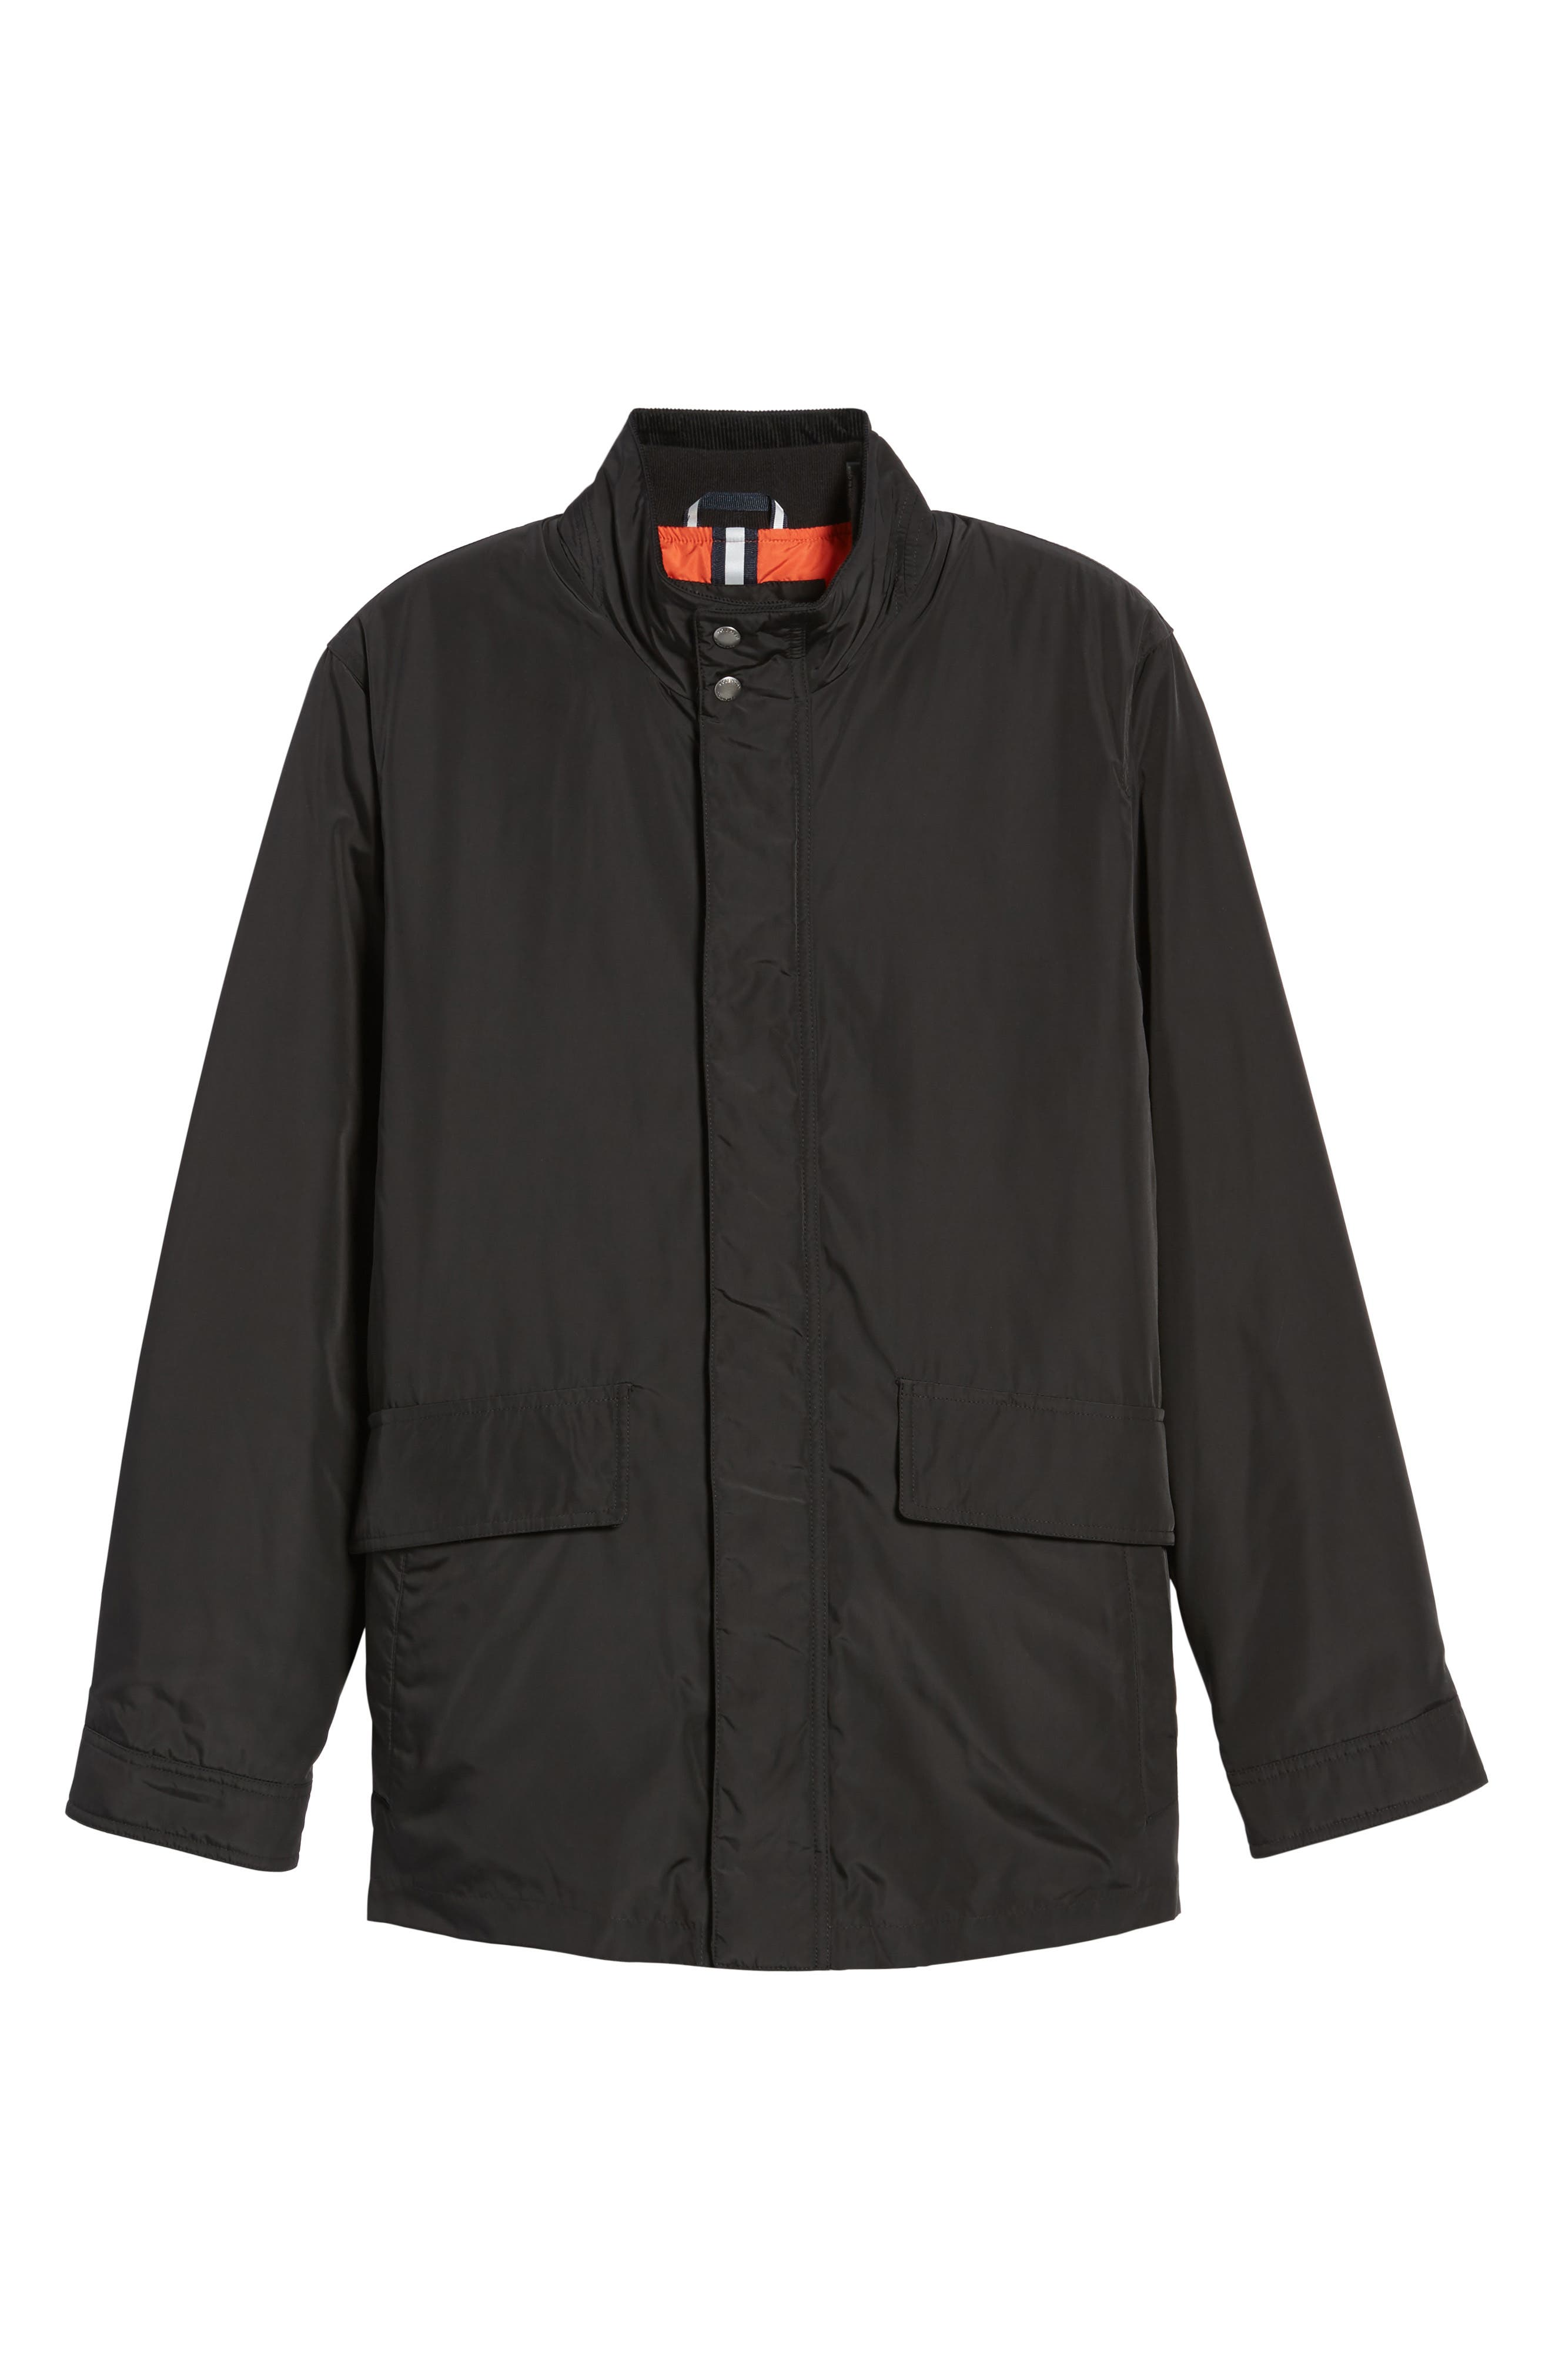 Coat with Removable Bomber Jacket,                             Alternate thumbnail 5, color,                             001